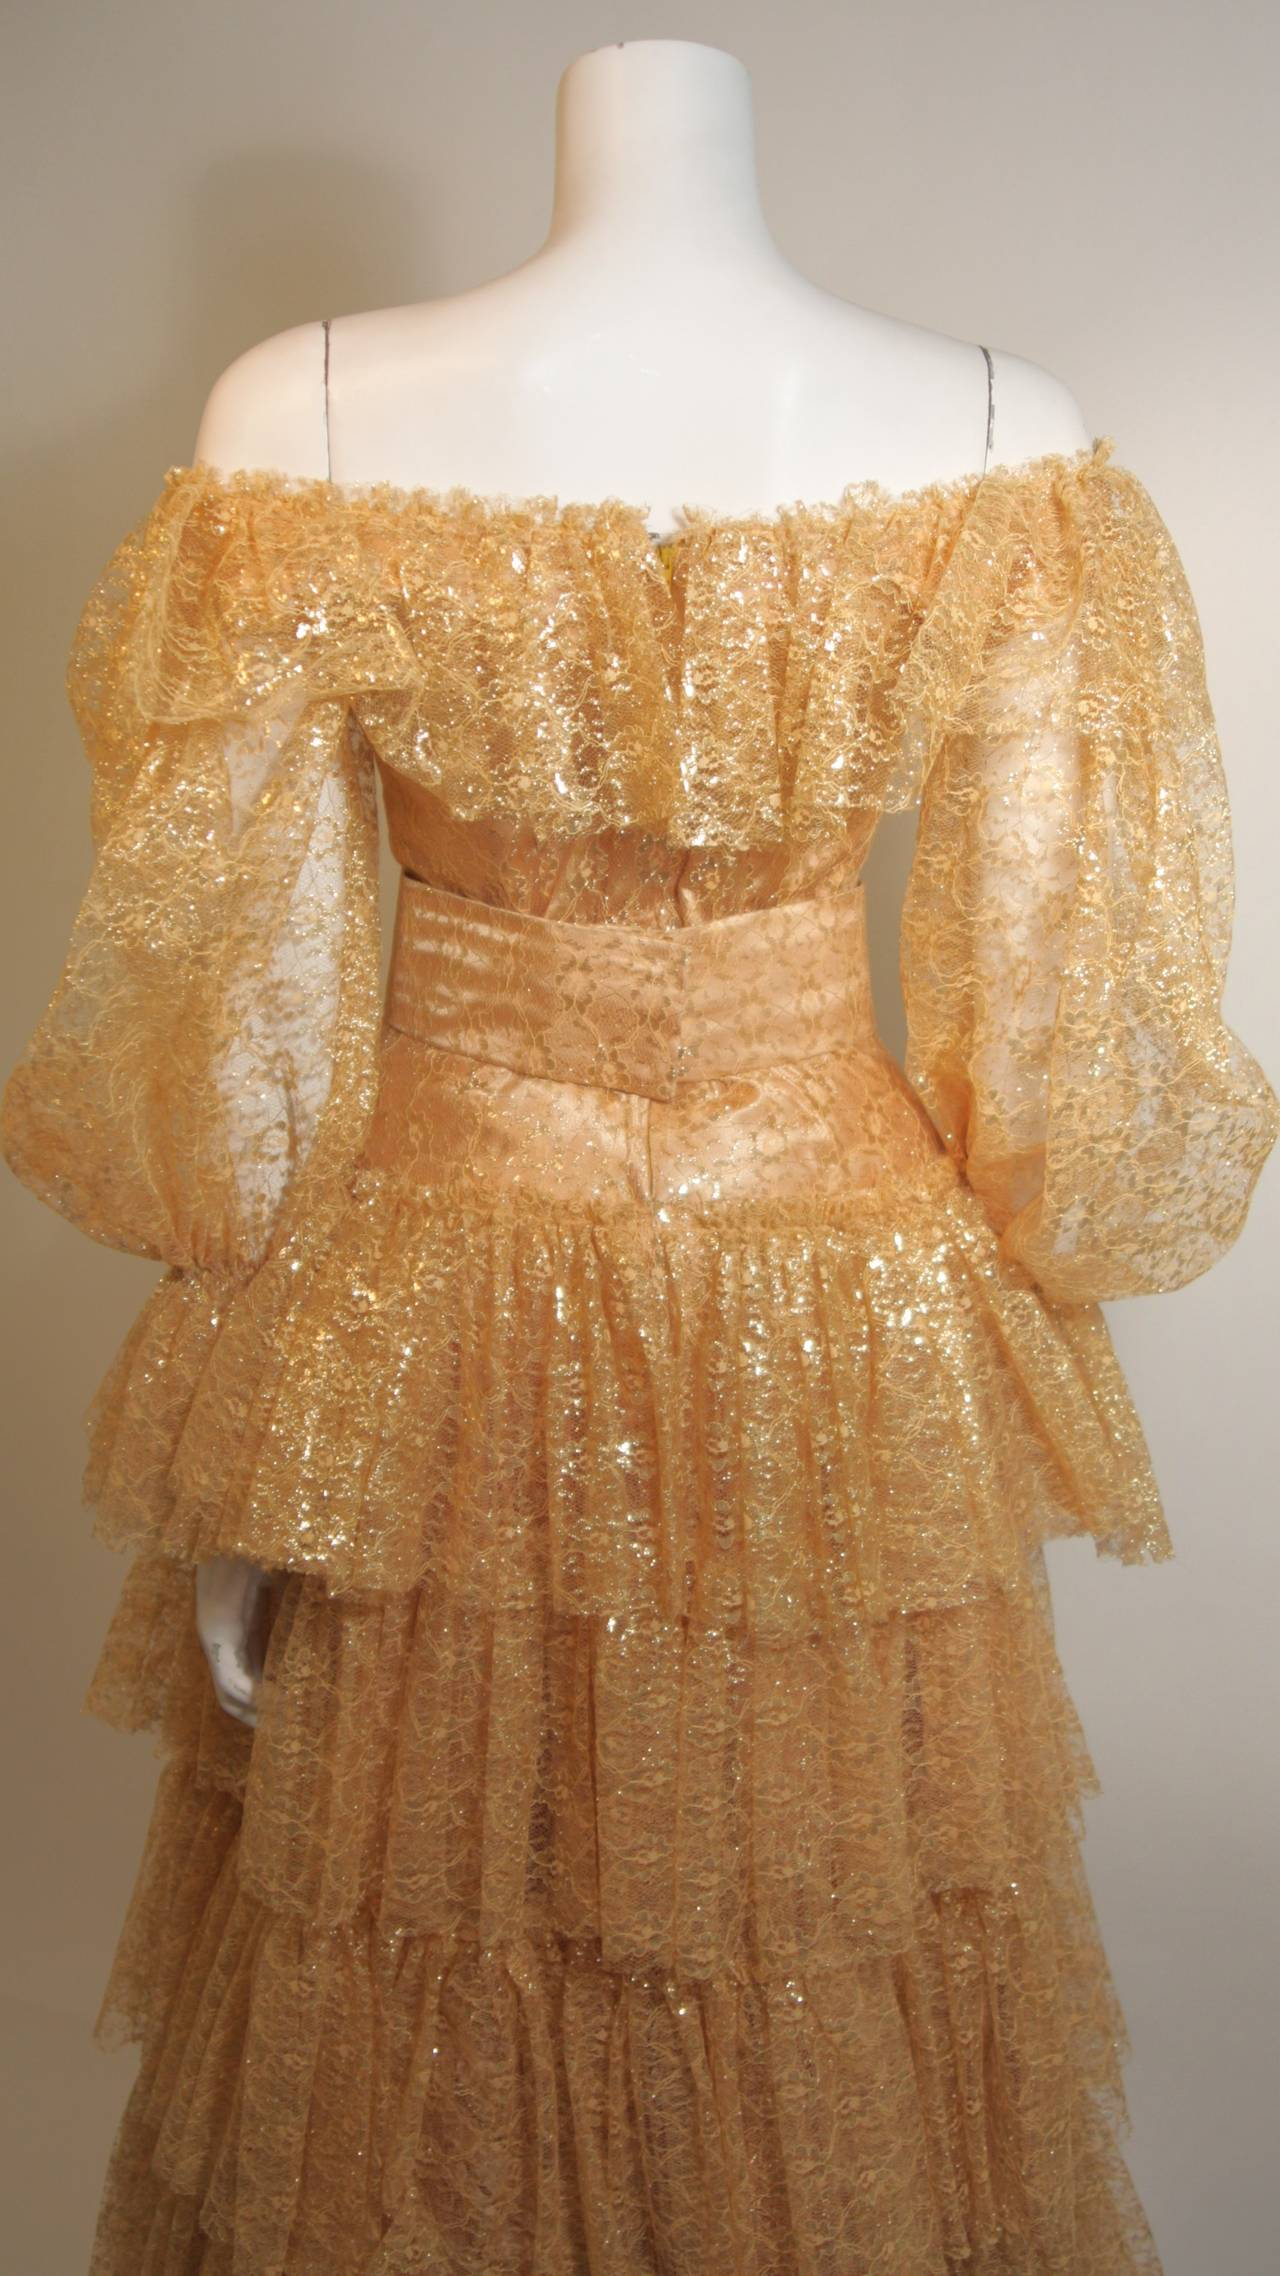 Attributed to Travilla Gold Tiered Lace Ball Gown with sheer lace sleeves size 4 For Sale 4